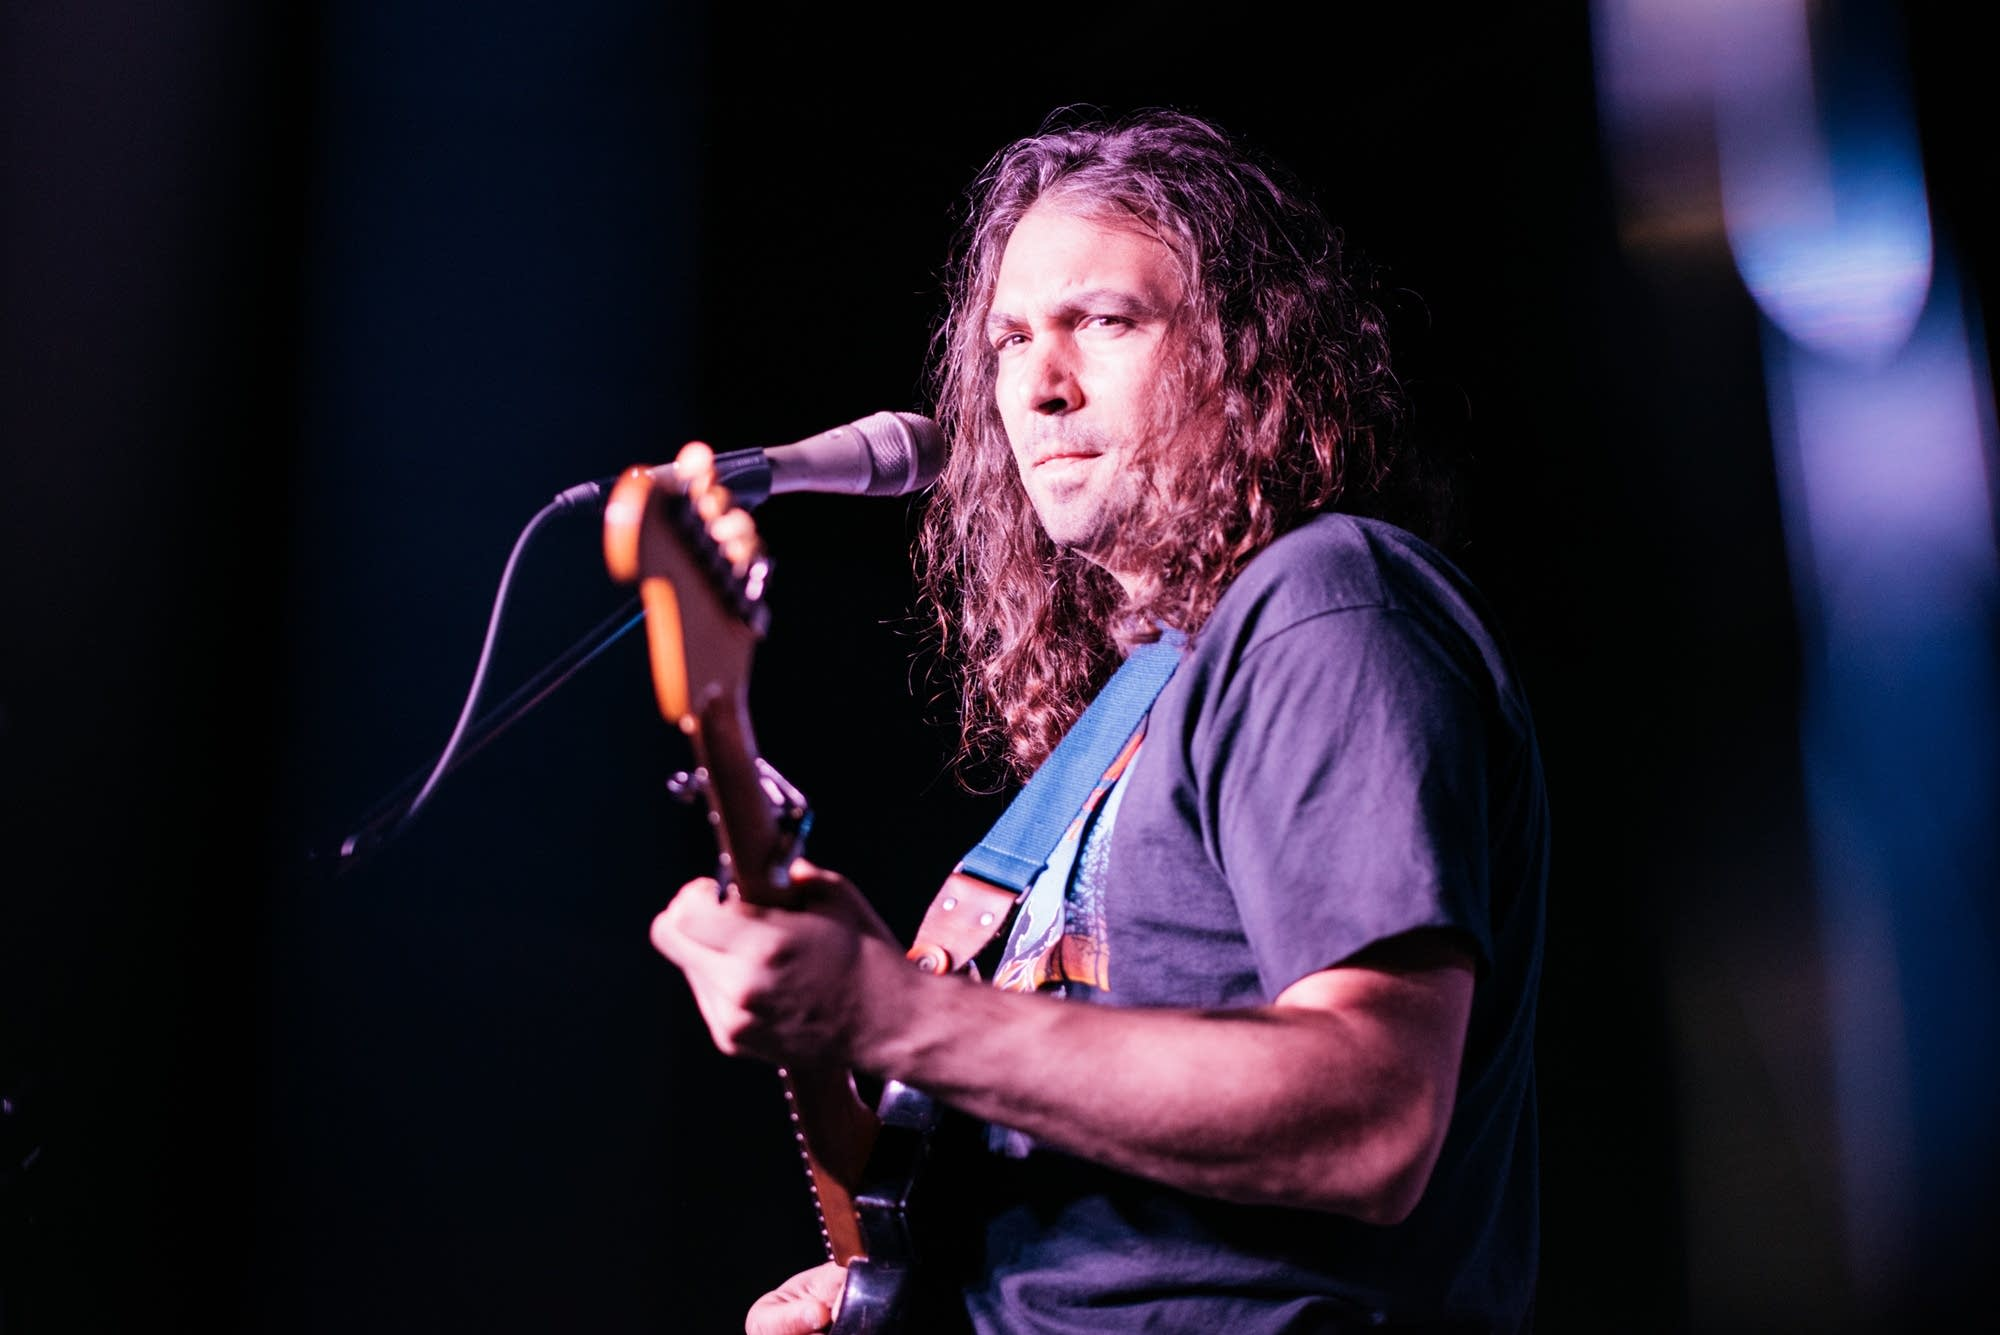 The War on Drugs MicroShow